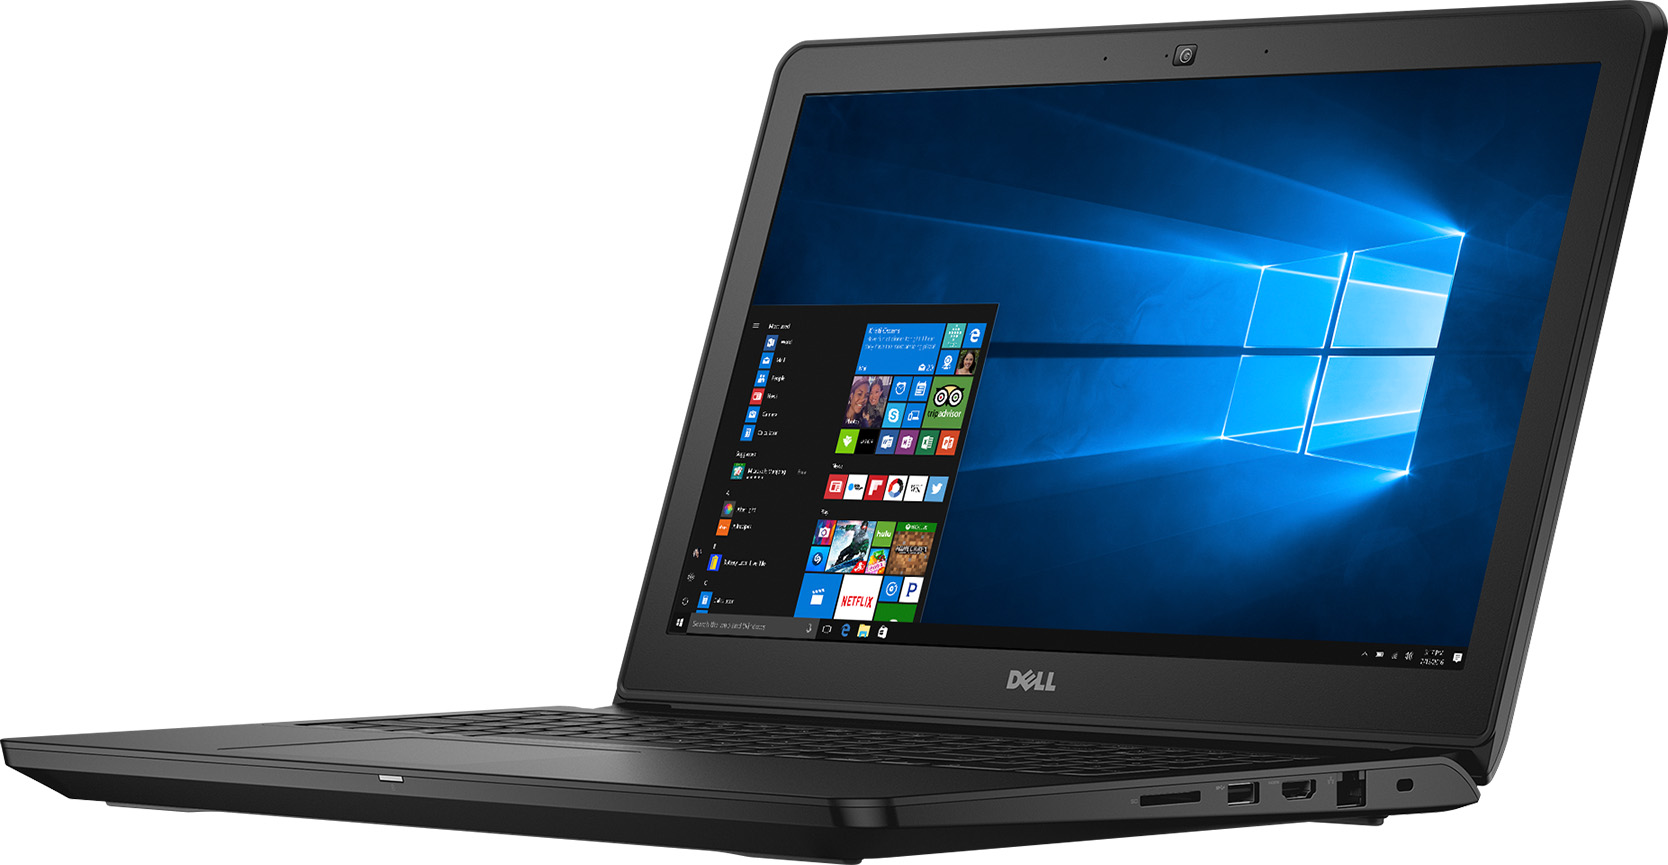 Dell Inspiron 15 7000 series, 7559